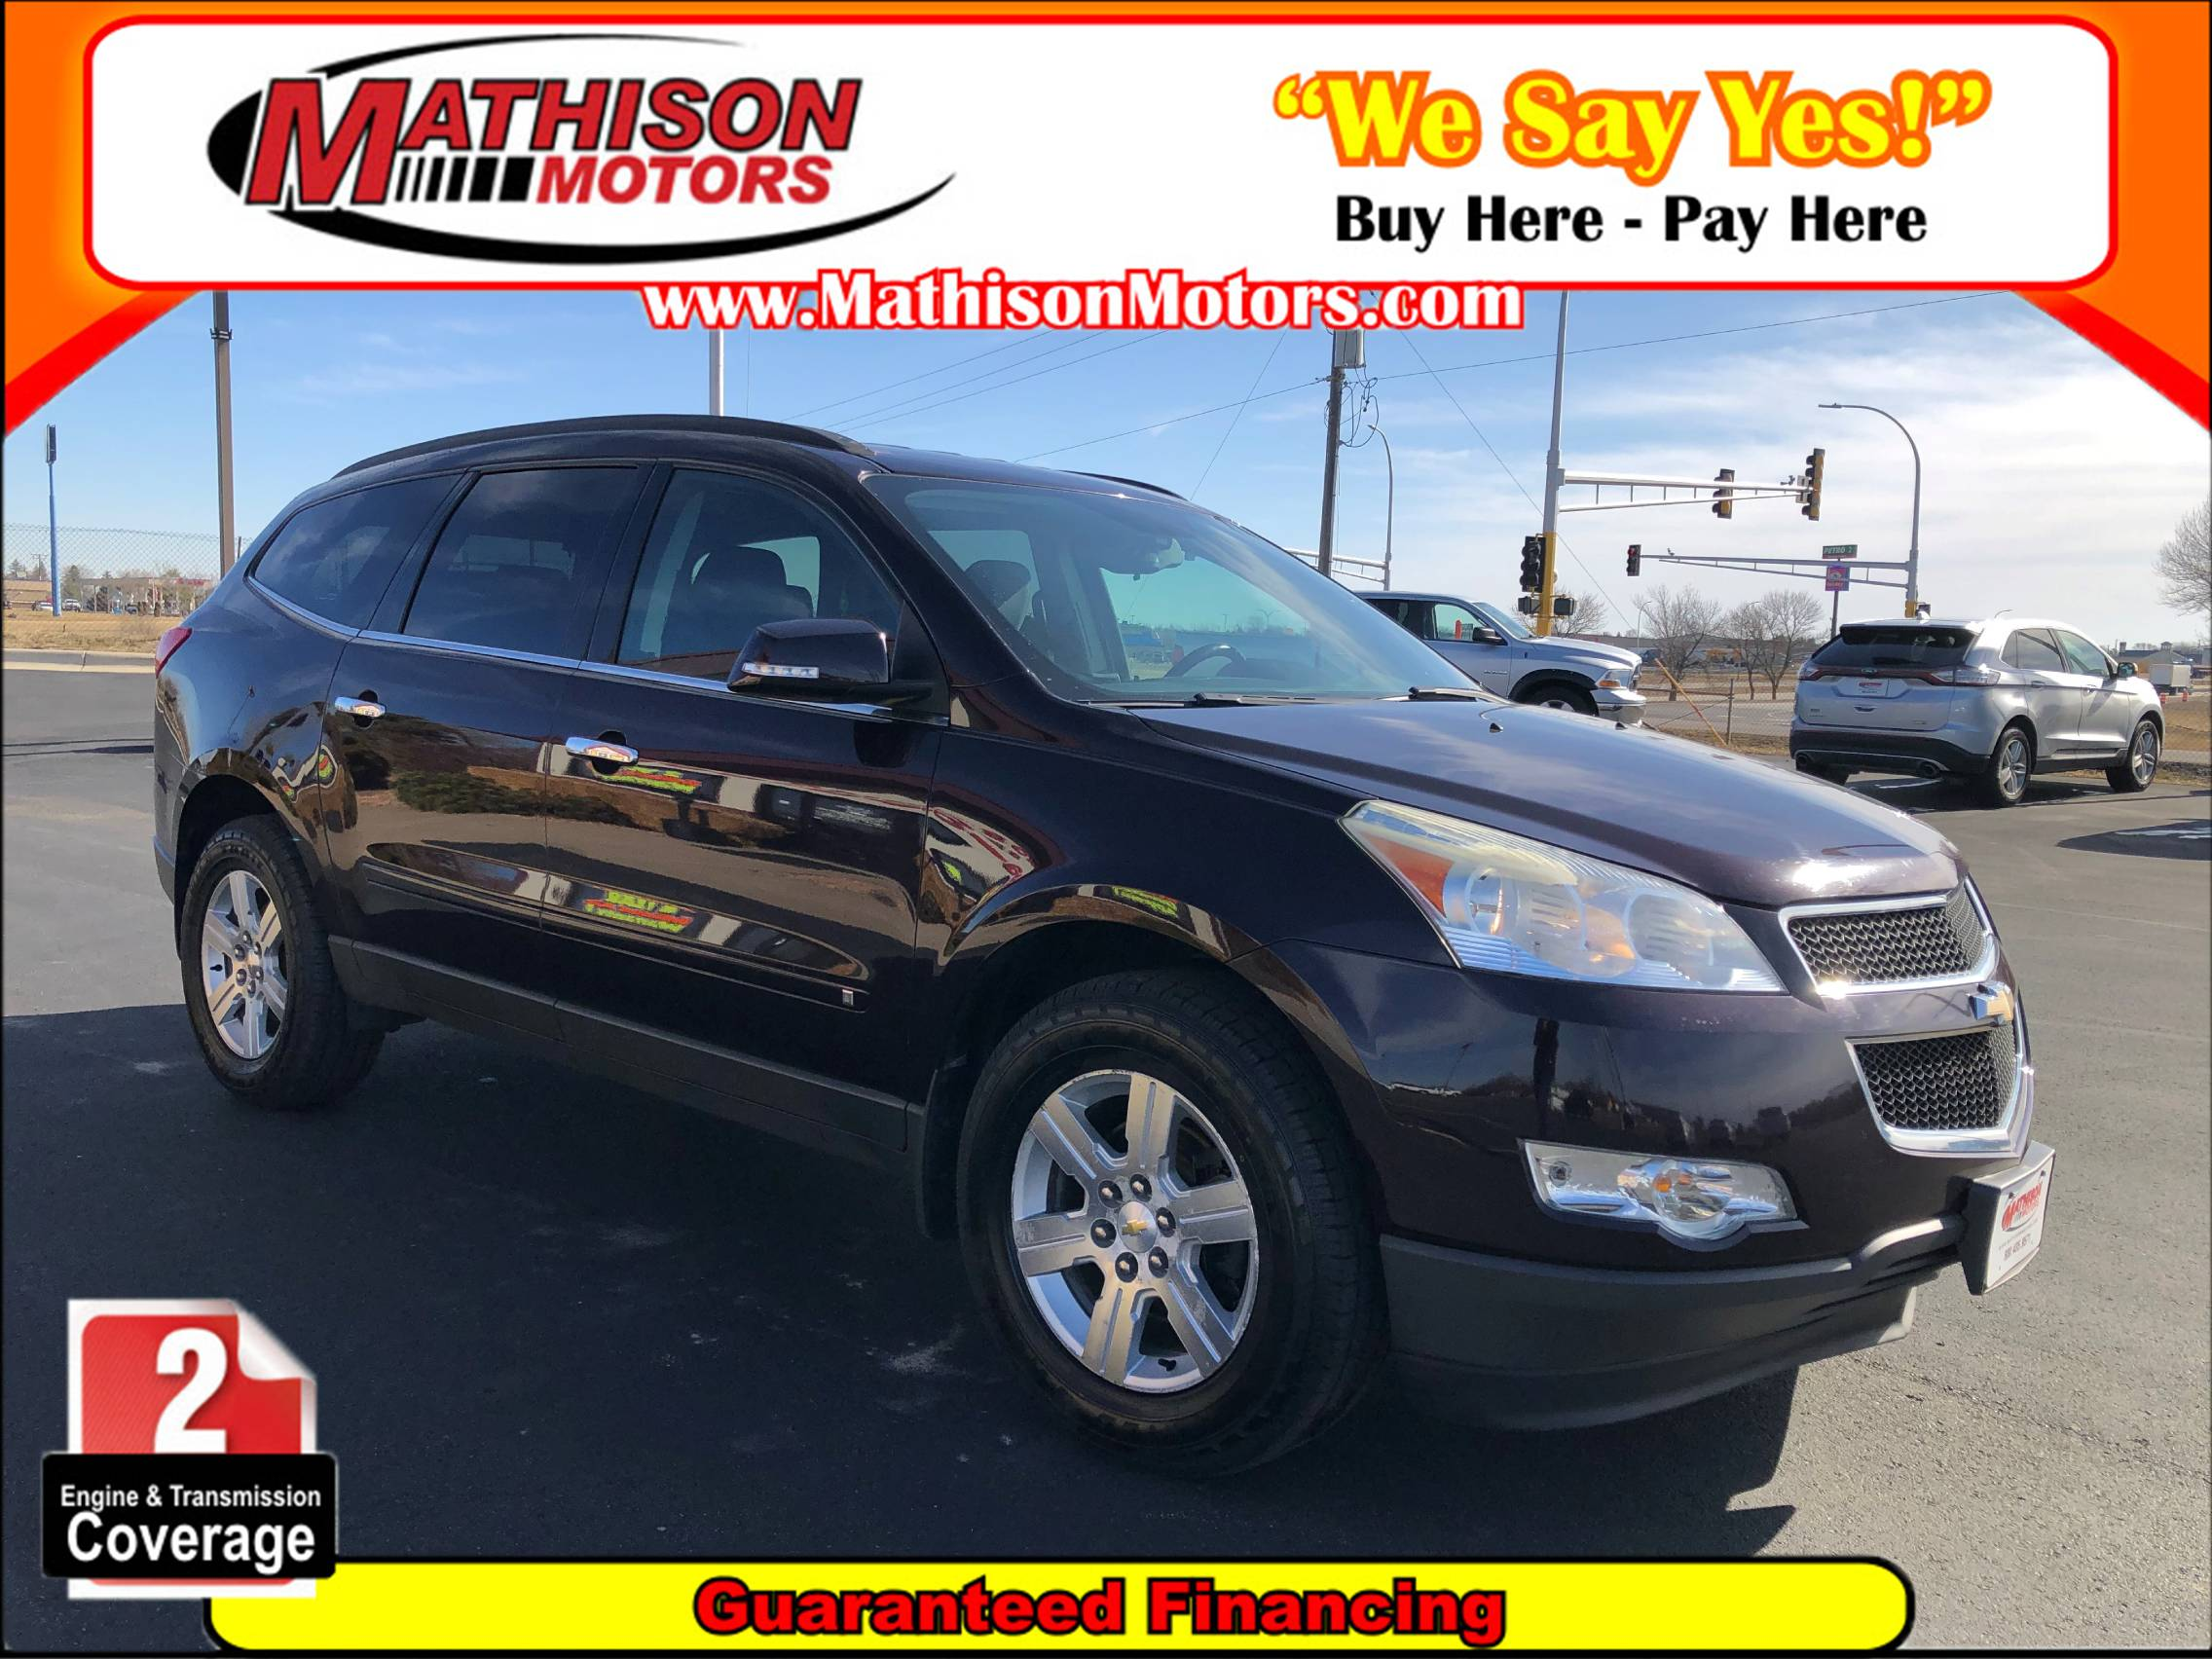 used vehicle - SUV CHEVROLET TRAVERSE 2010